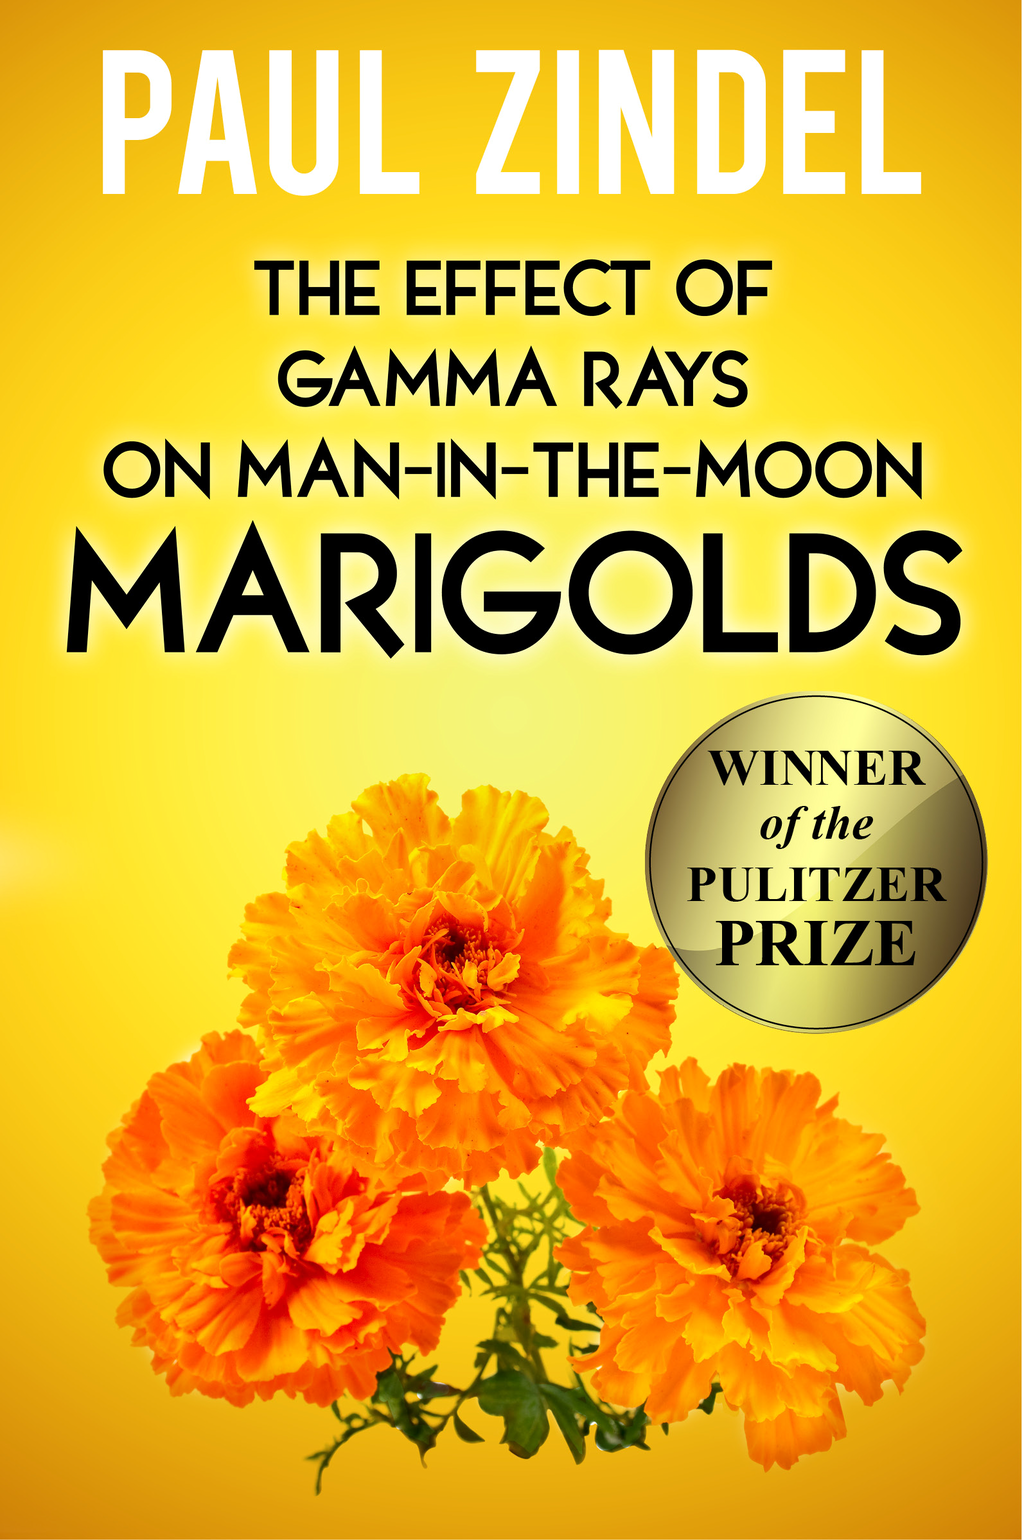 The Effect of Gamma Rays on Man-in-the-Moon Marigolds (Winner of the Pulitzer Prize)